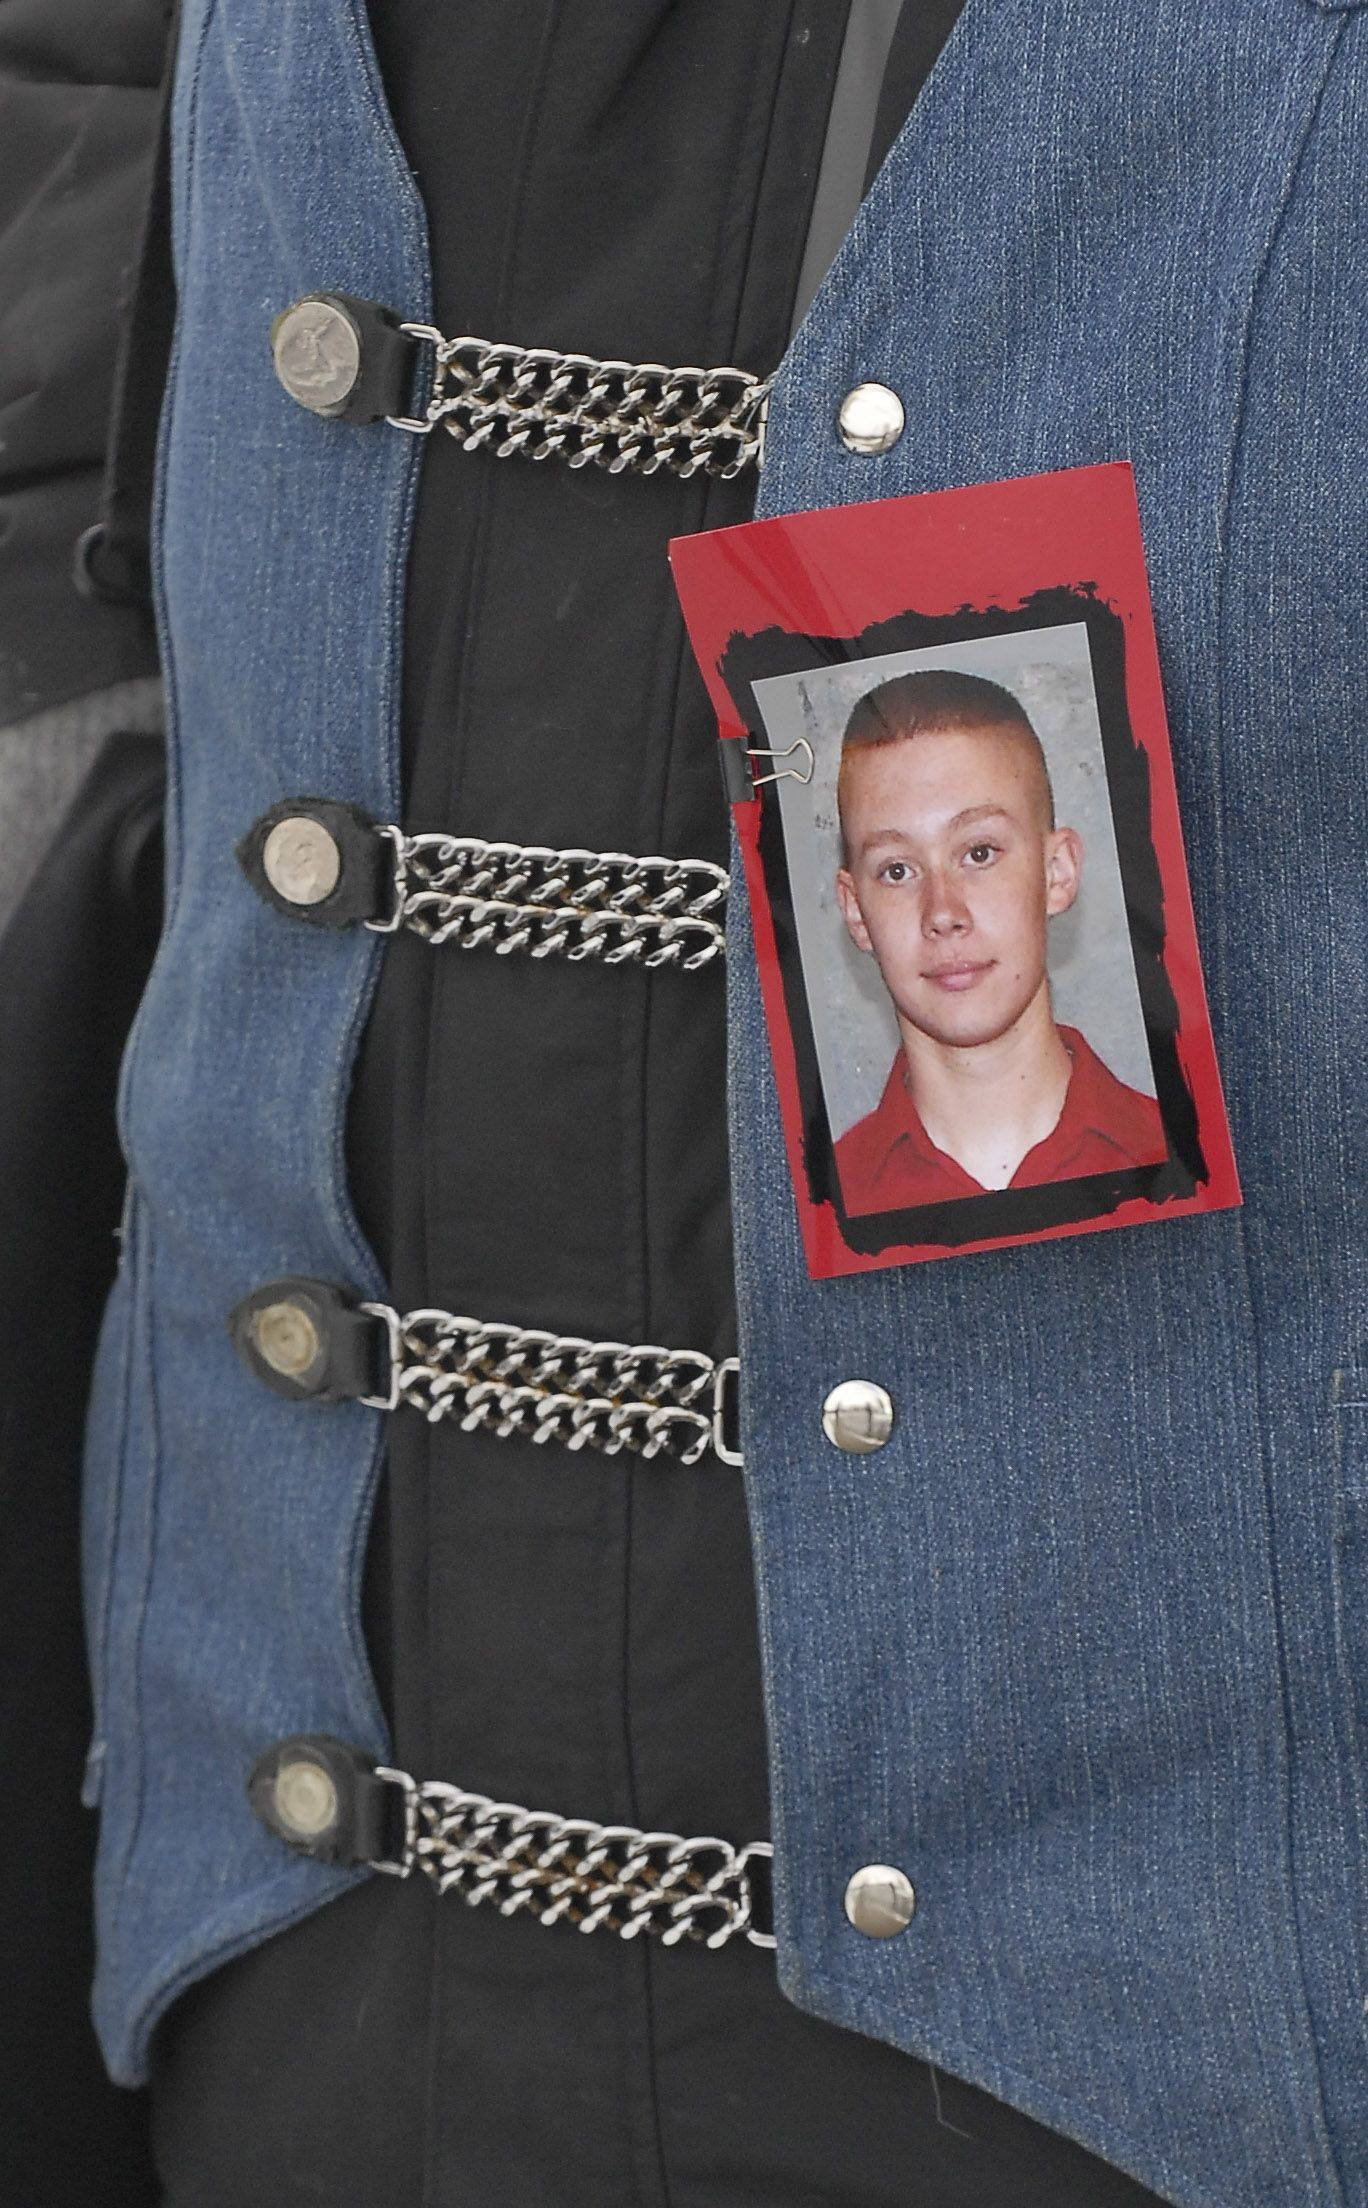 Photos of Spc. Christopher A. Patterson, a member of the 713th Engineer Company of the Indiana National Guard, were worn by members of the Patriot Guard at his funeral.